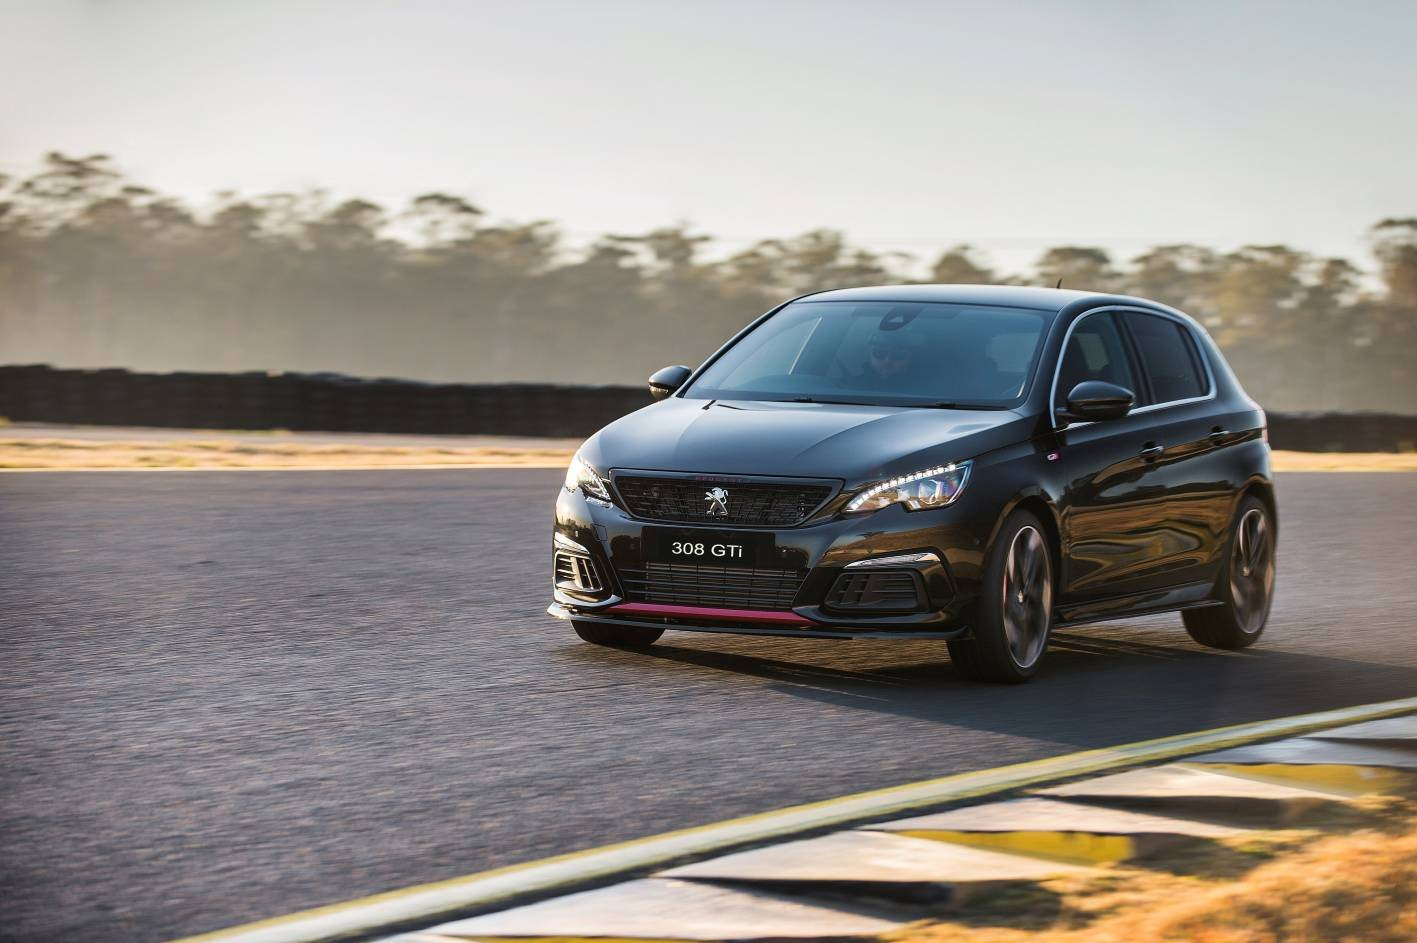 Peugeot Garage Amsterdam : Special edition peugeot gti sport comes with driver training